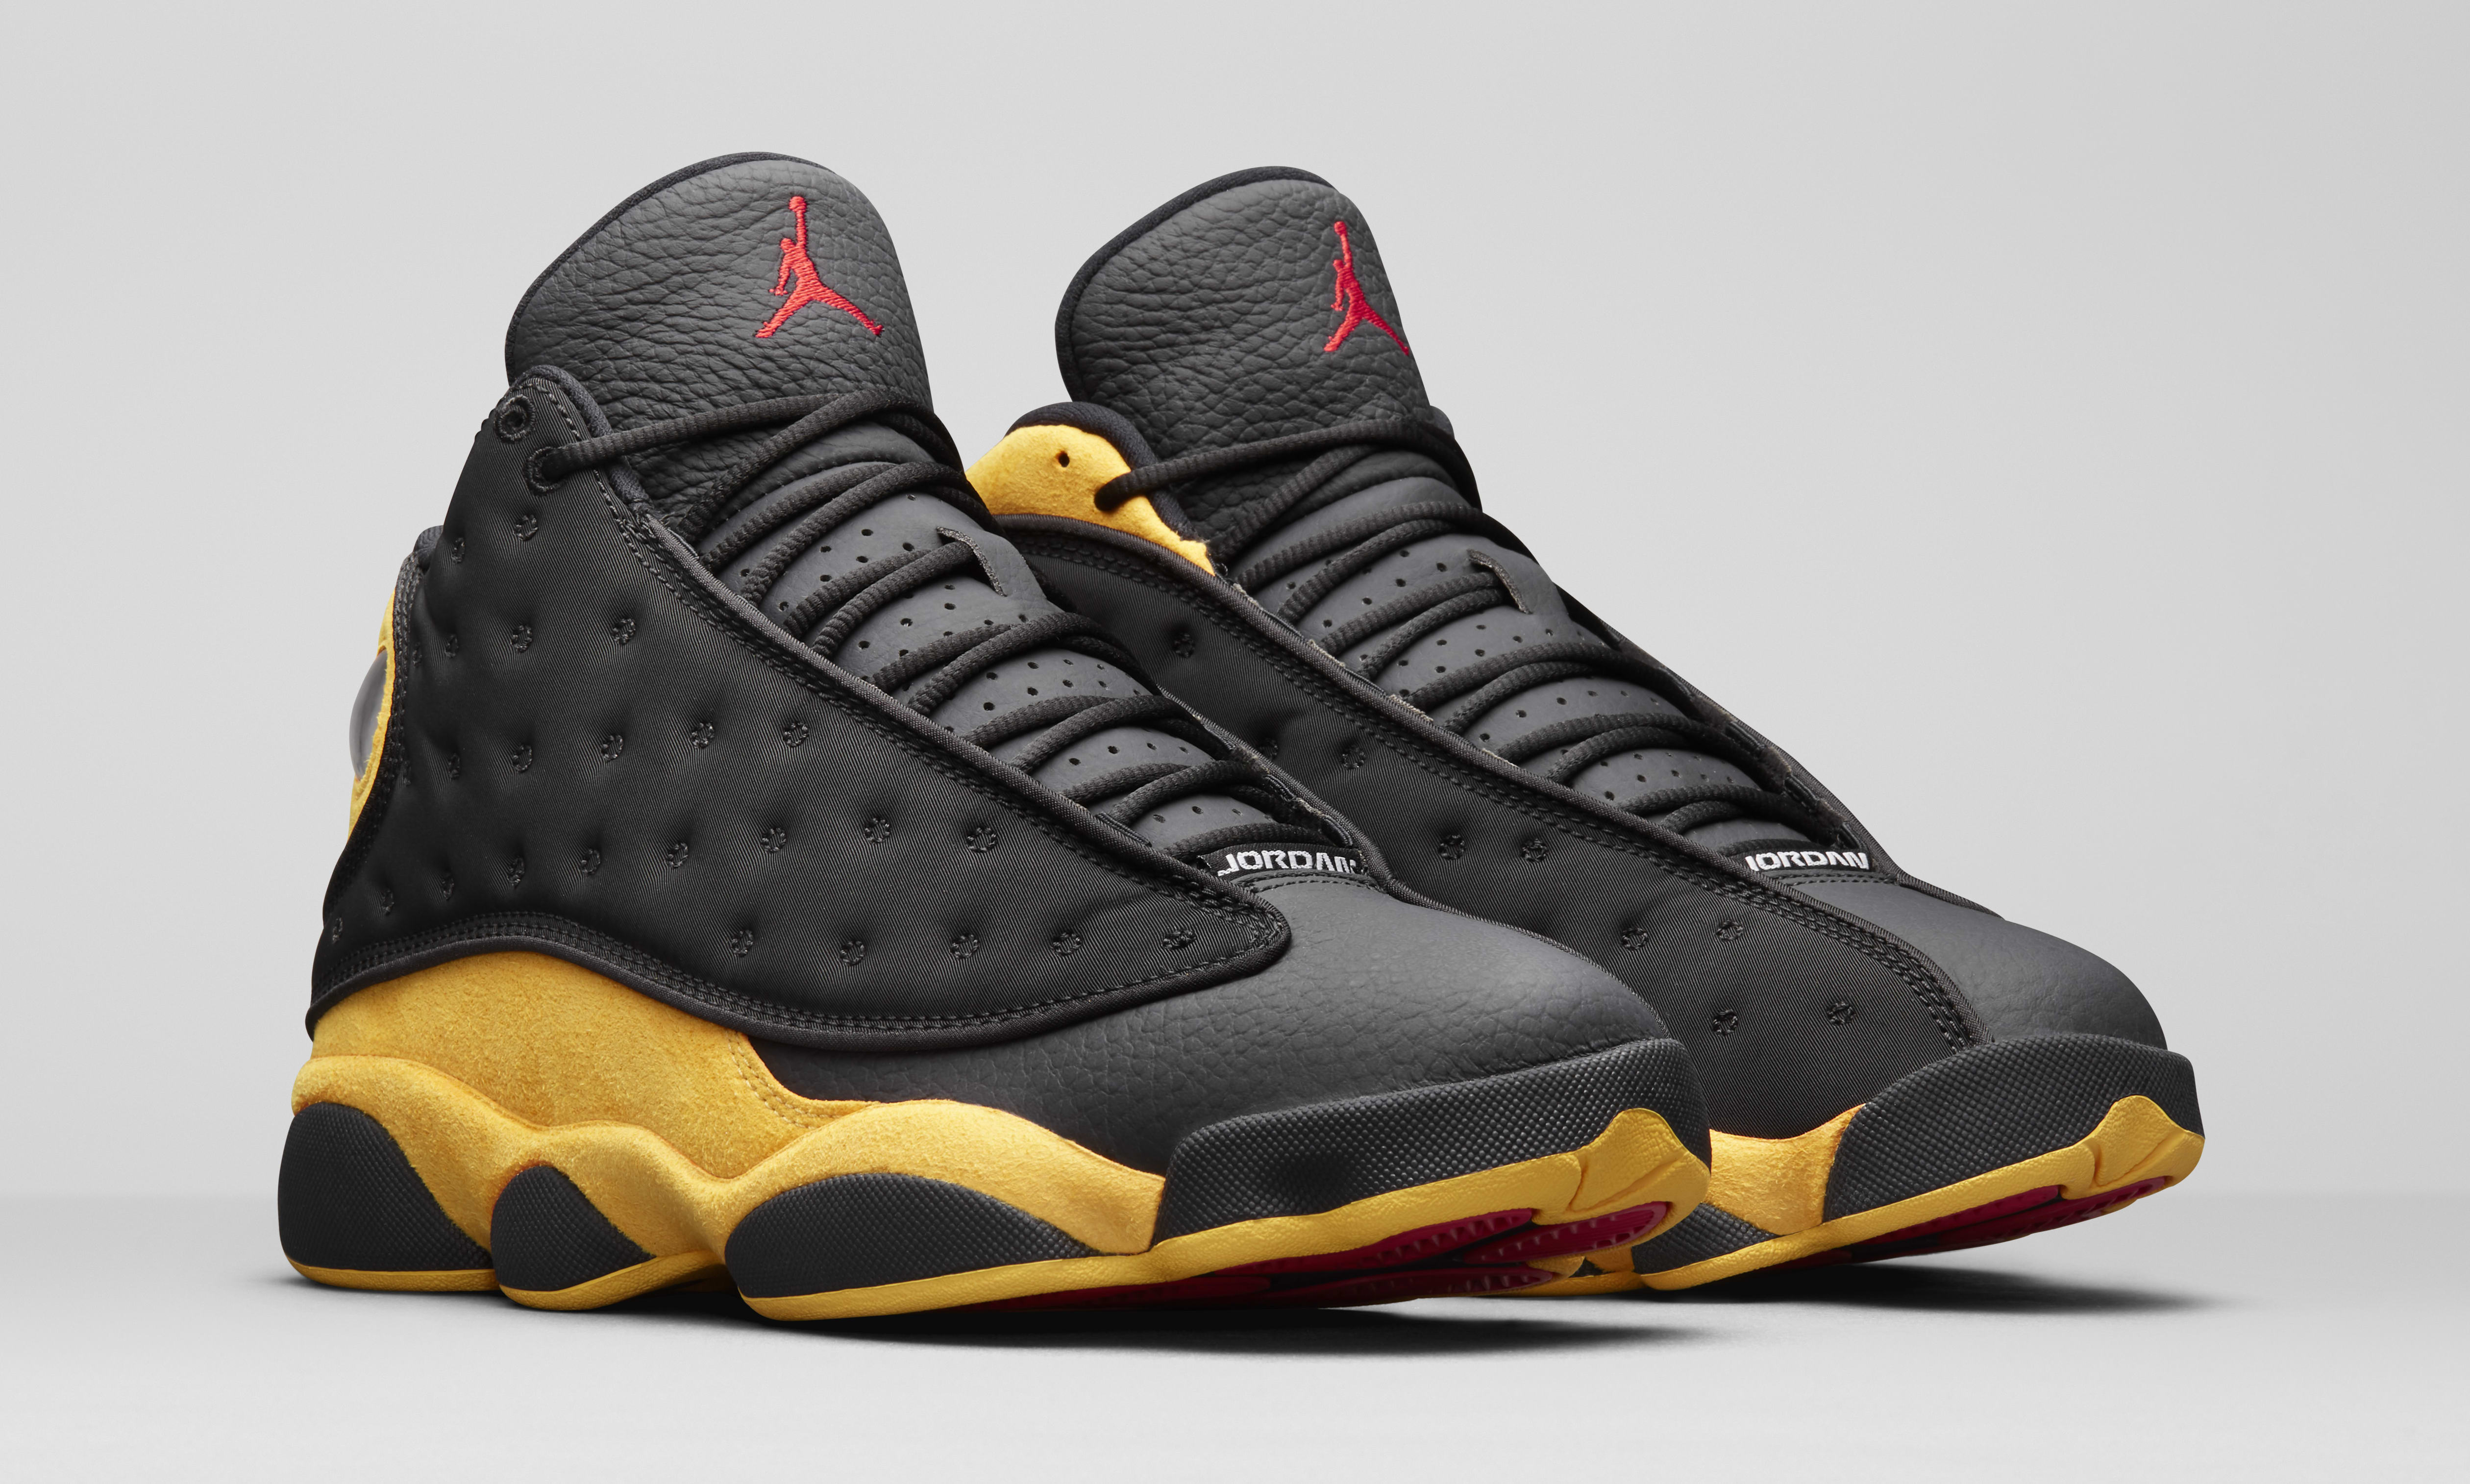 7acff37ab98d3 Air Jordan Retro 'Back to School' Collection Release Date | Sole Collector